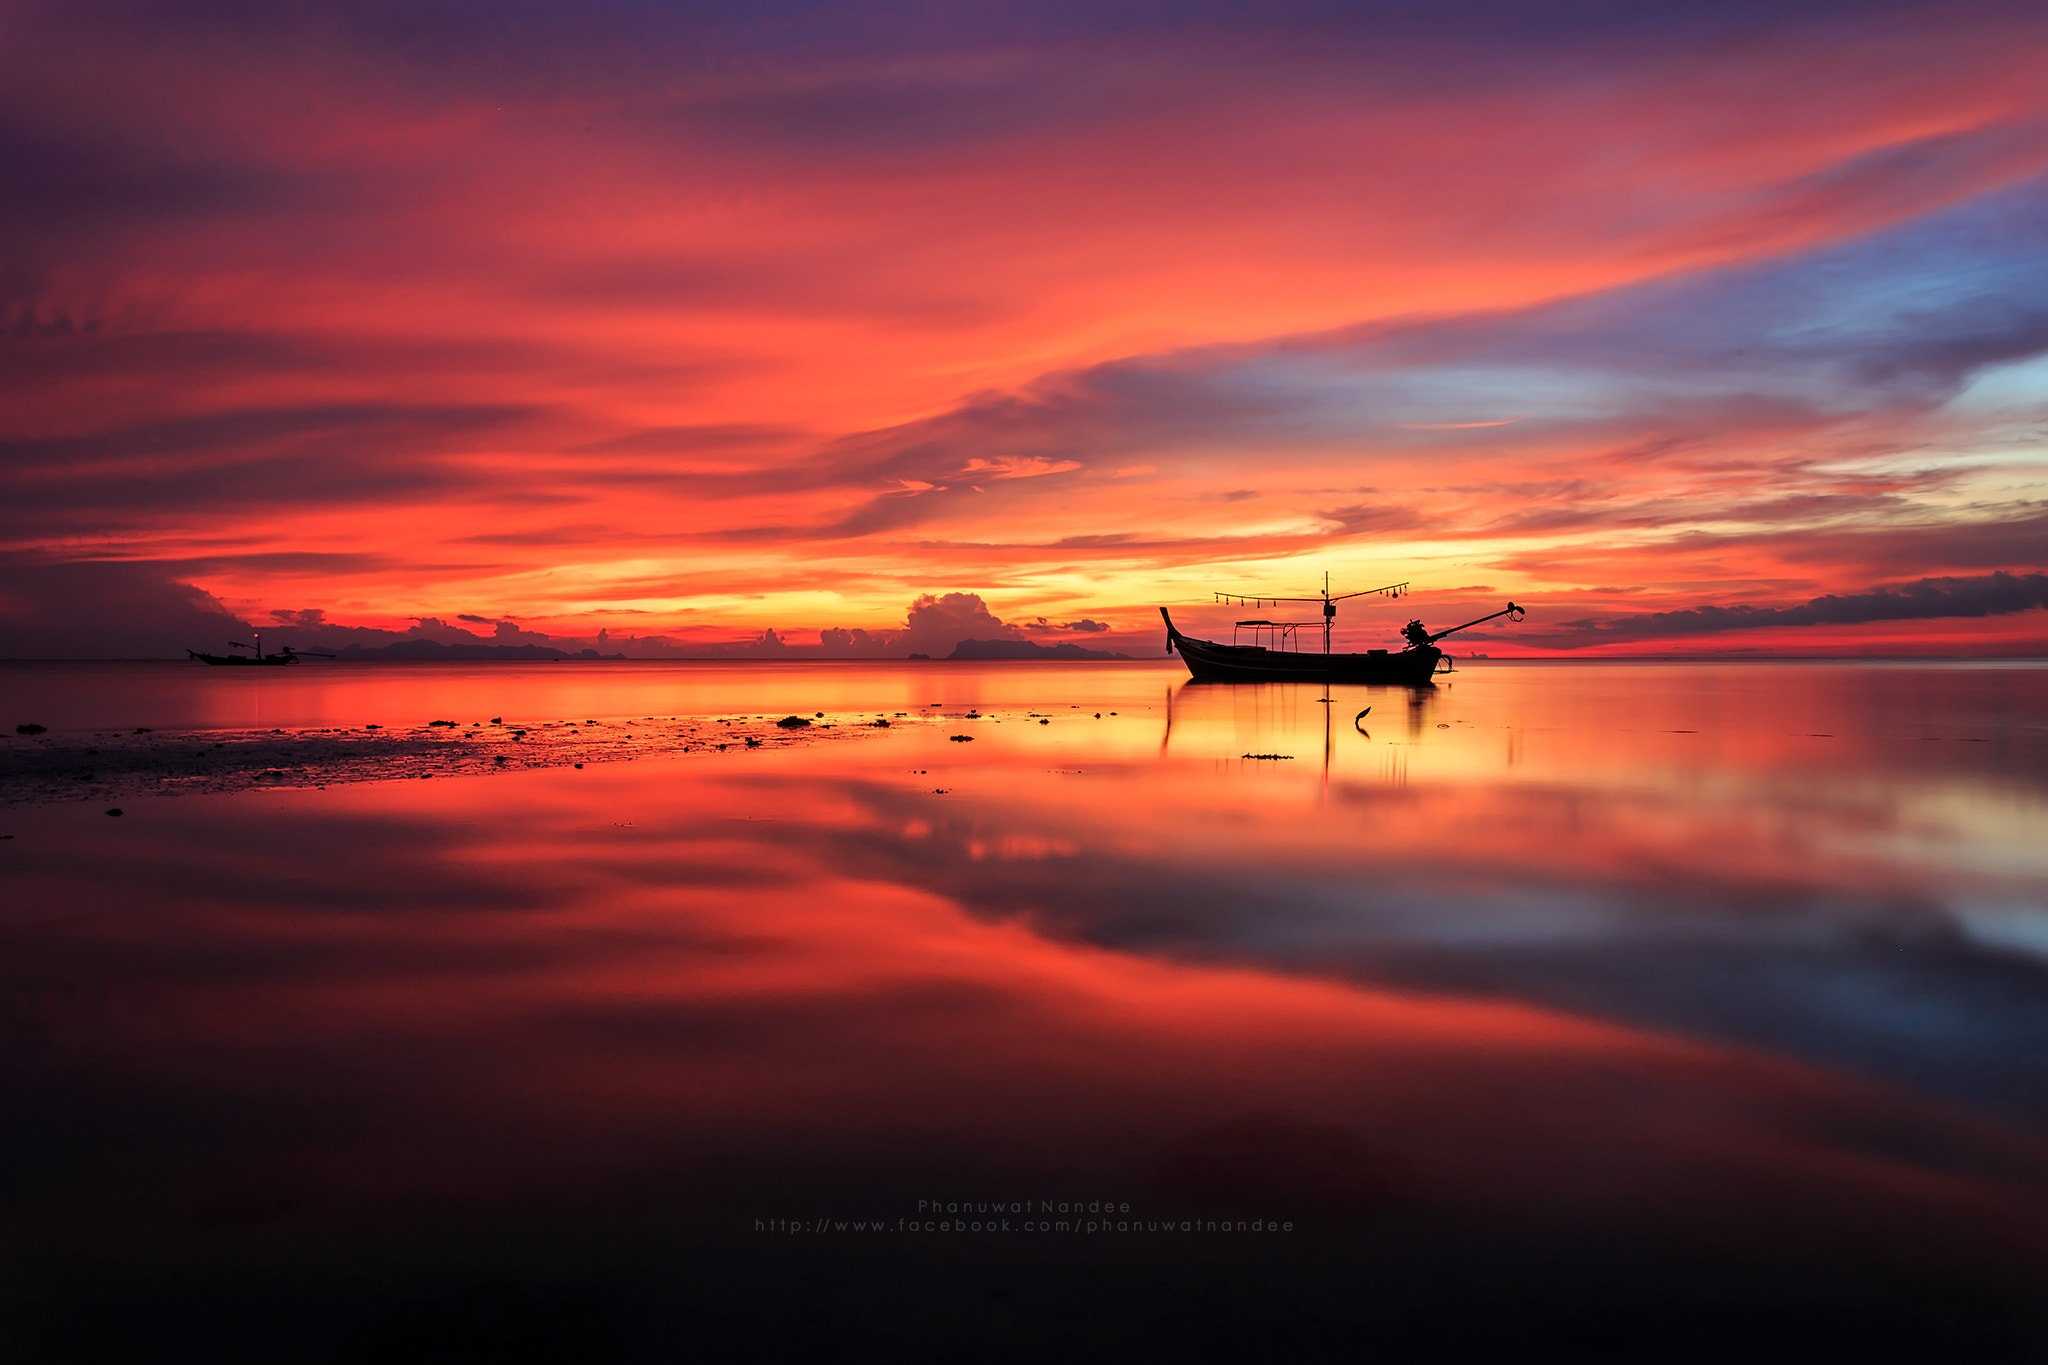 Photograph The Reflection of Sunset by Phanuwat Nandee on 500px